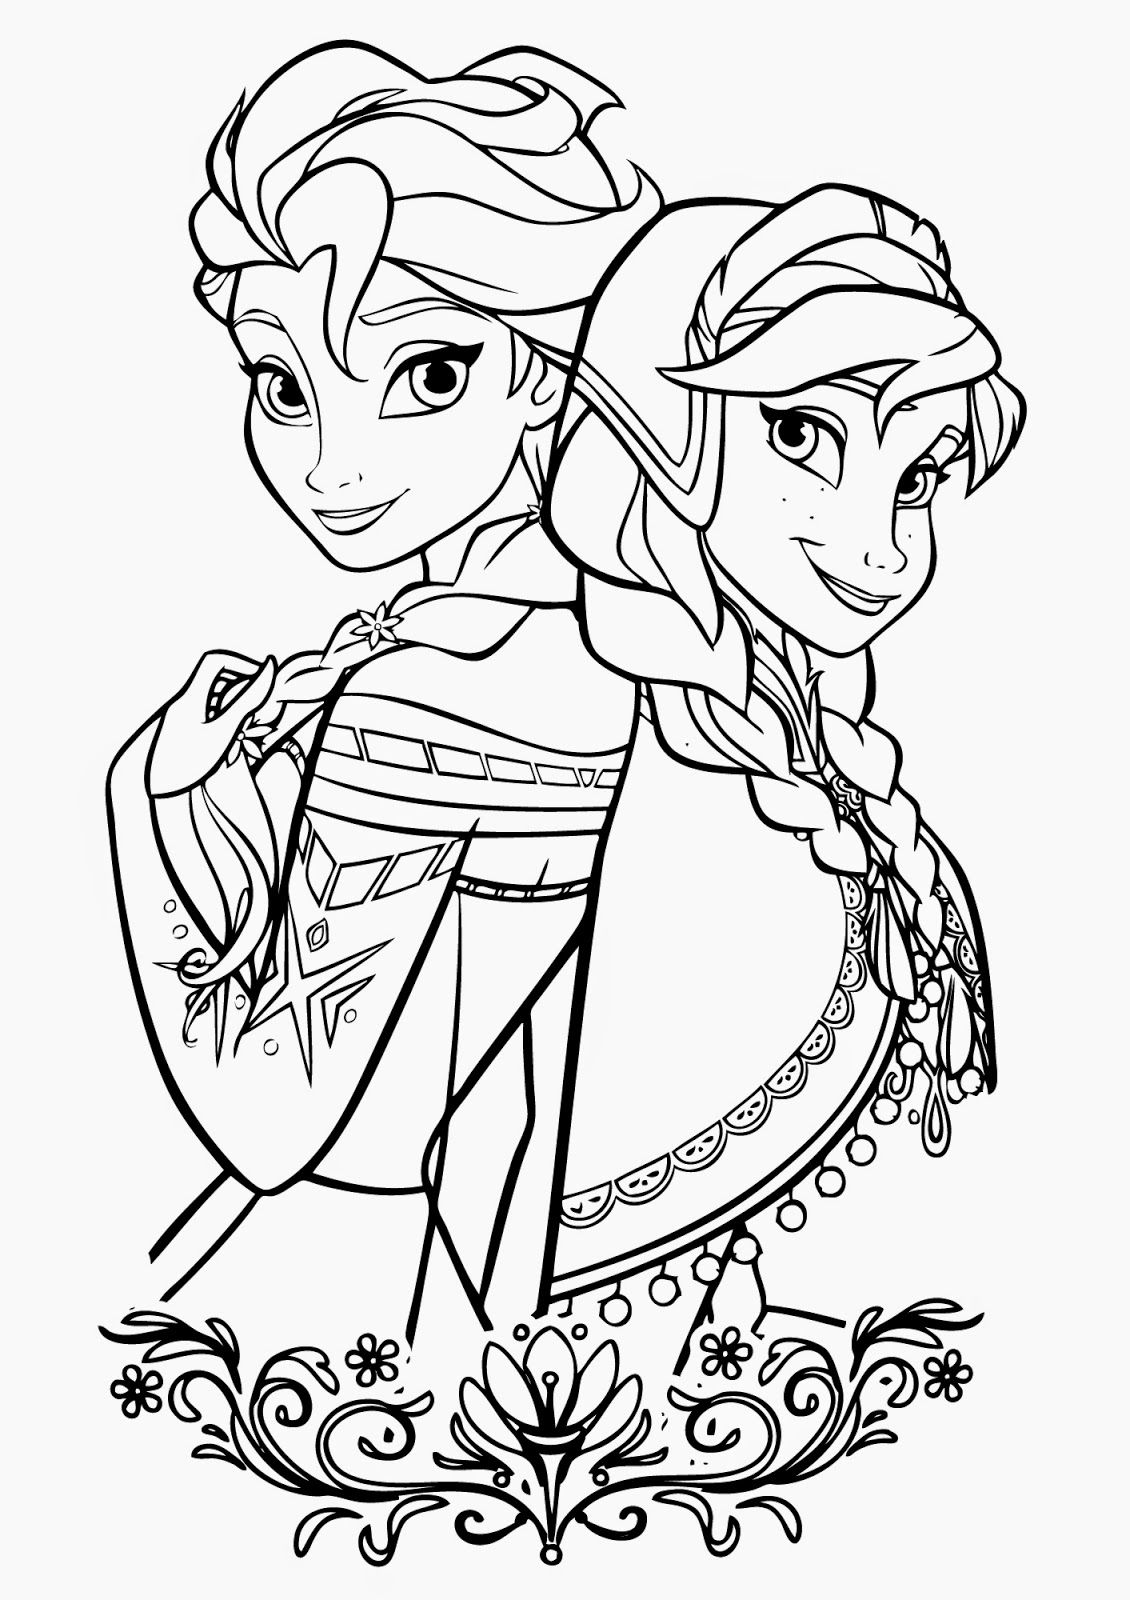 Disney lab rats coloring pages - Disney Frozen Olaf Coloring Pages Printable Coloring Pages Sheets For Kids Get The Latest Free Disney Frozen Olaf Coloring Pages Images Favorite Coloring